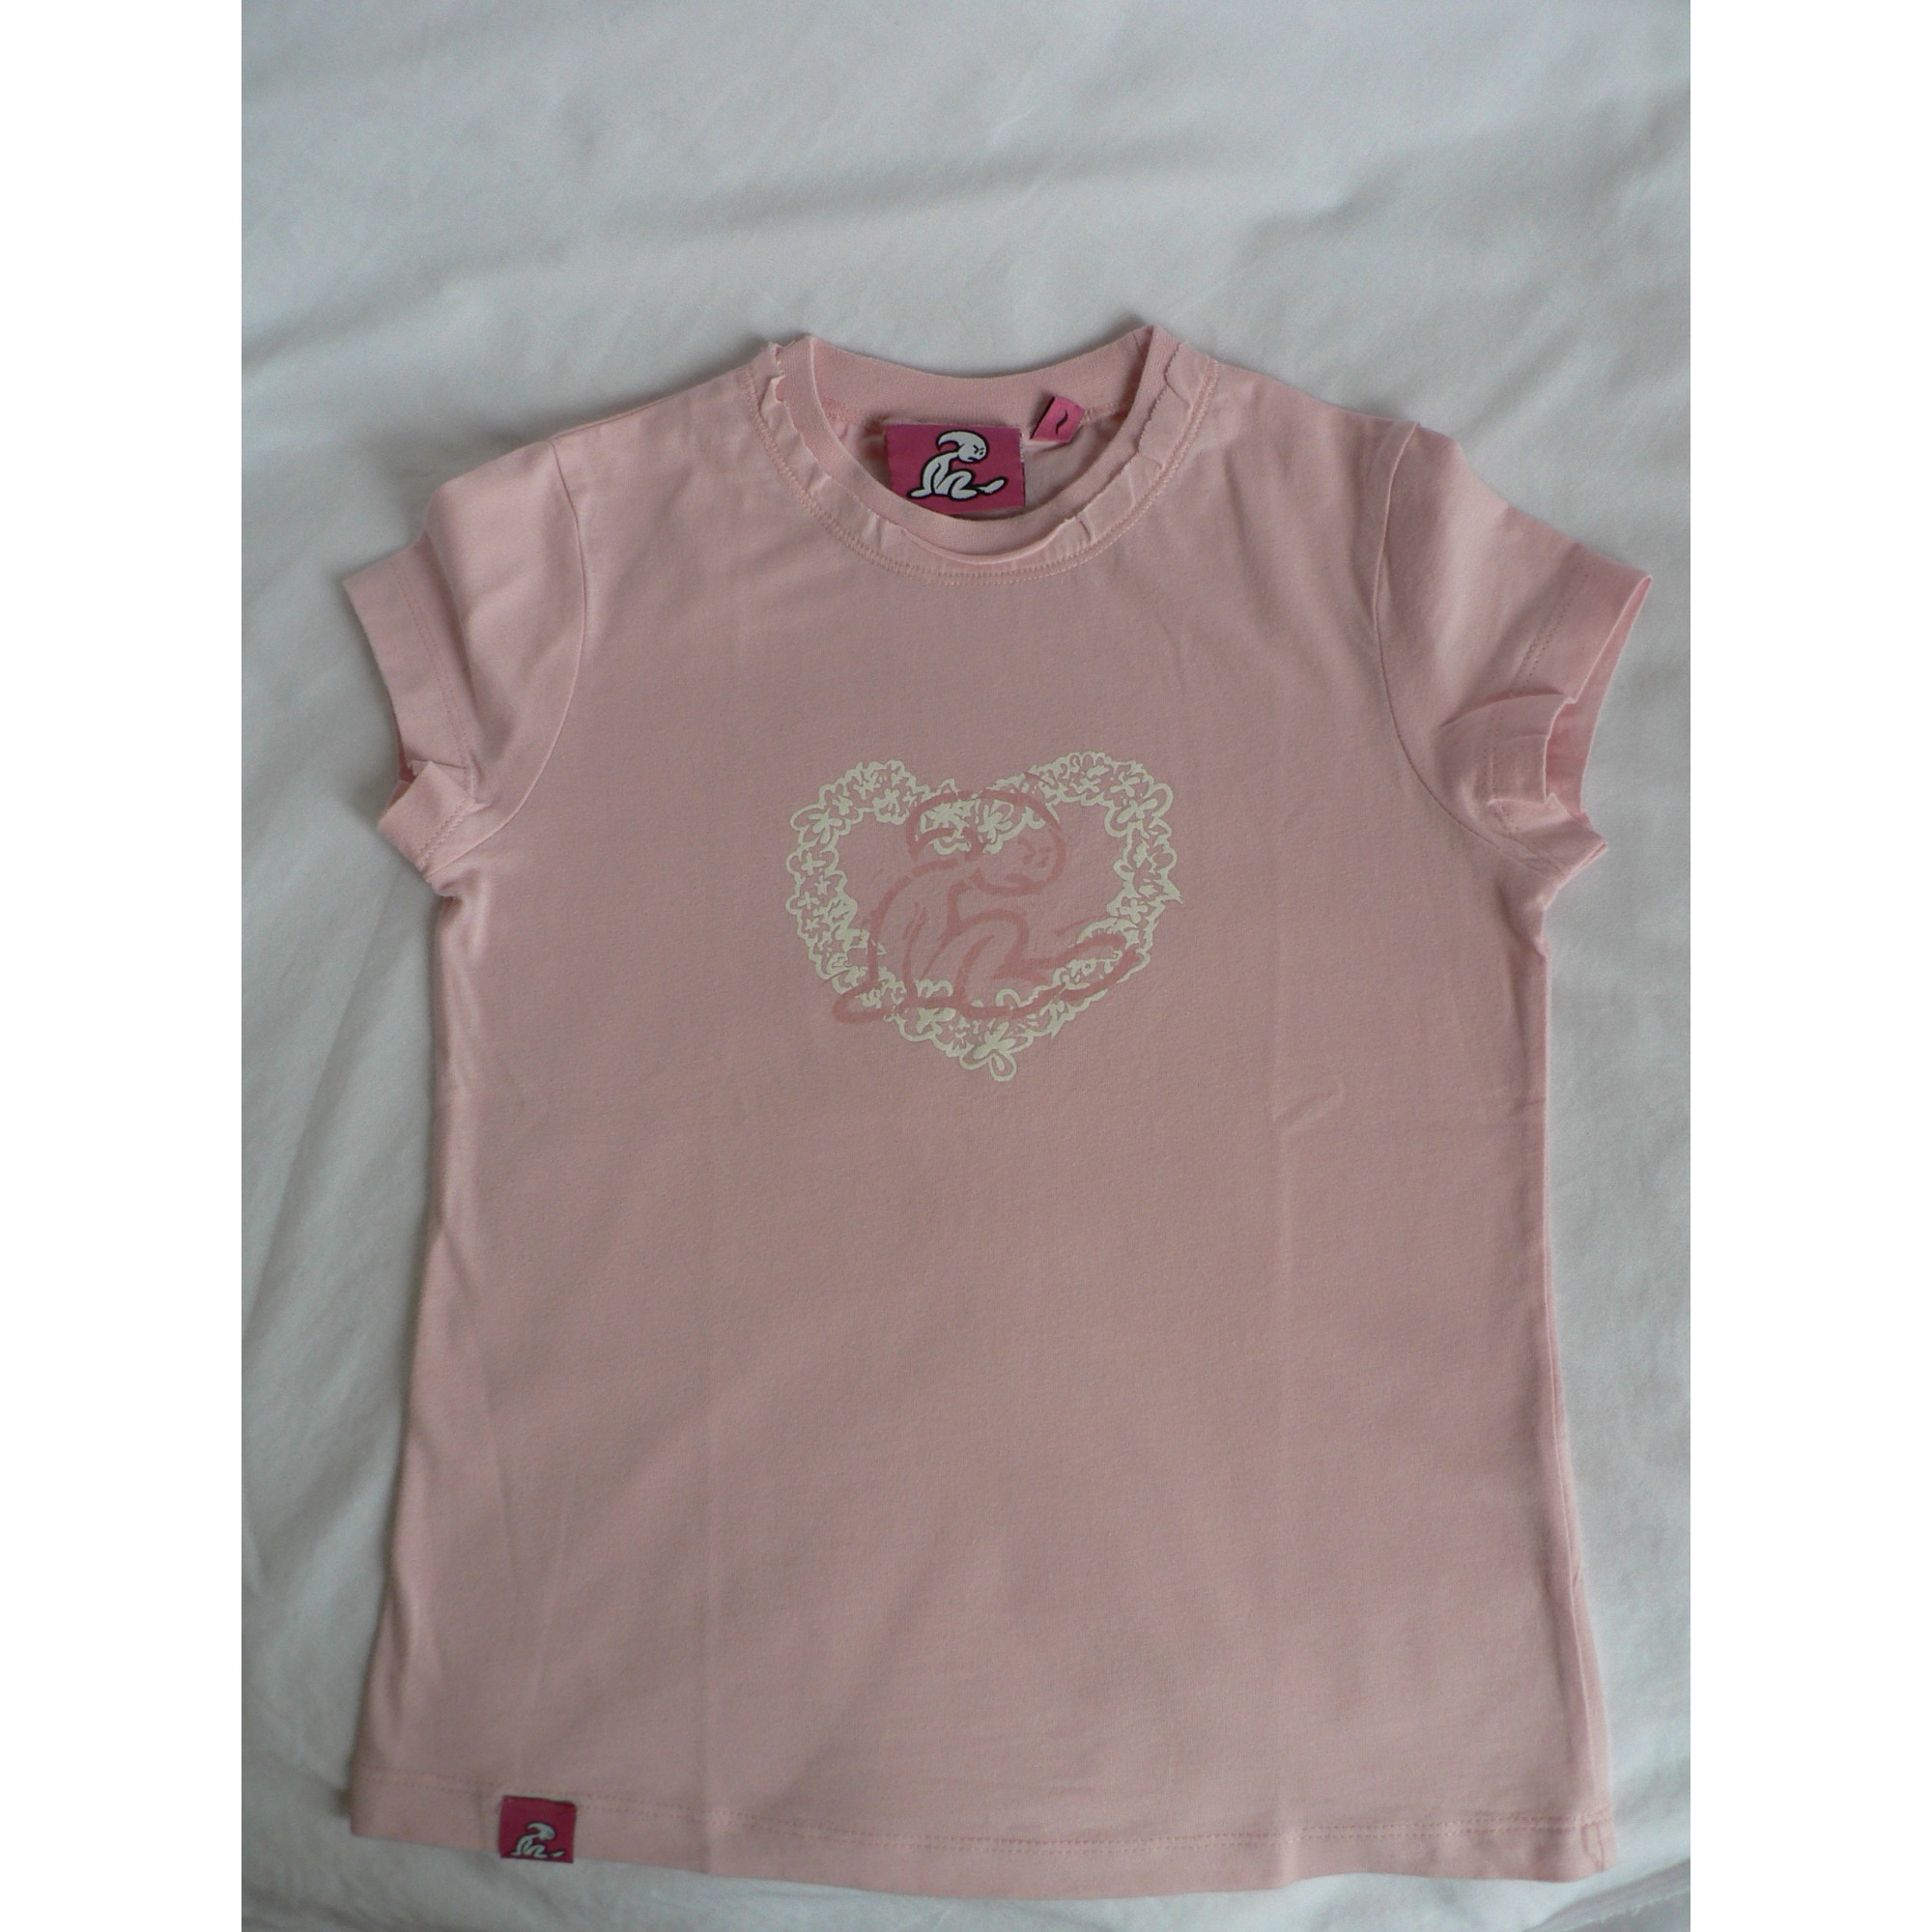 Top, Tee-shirt EL NIÑO Rose, fuschia, vieux rose